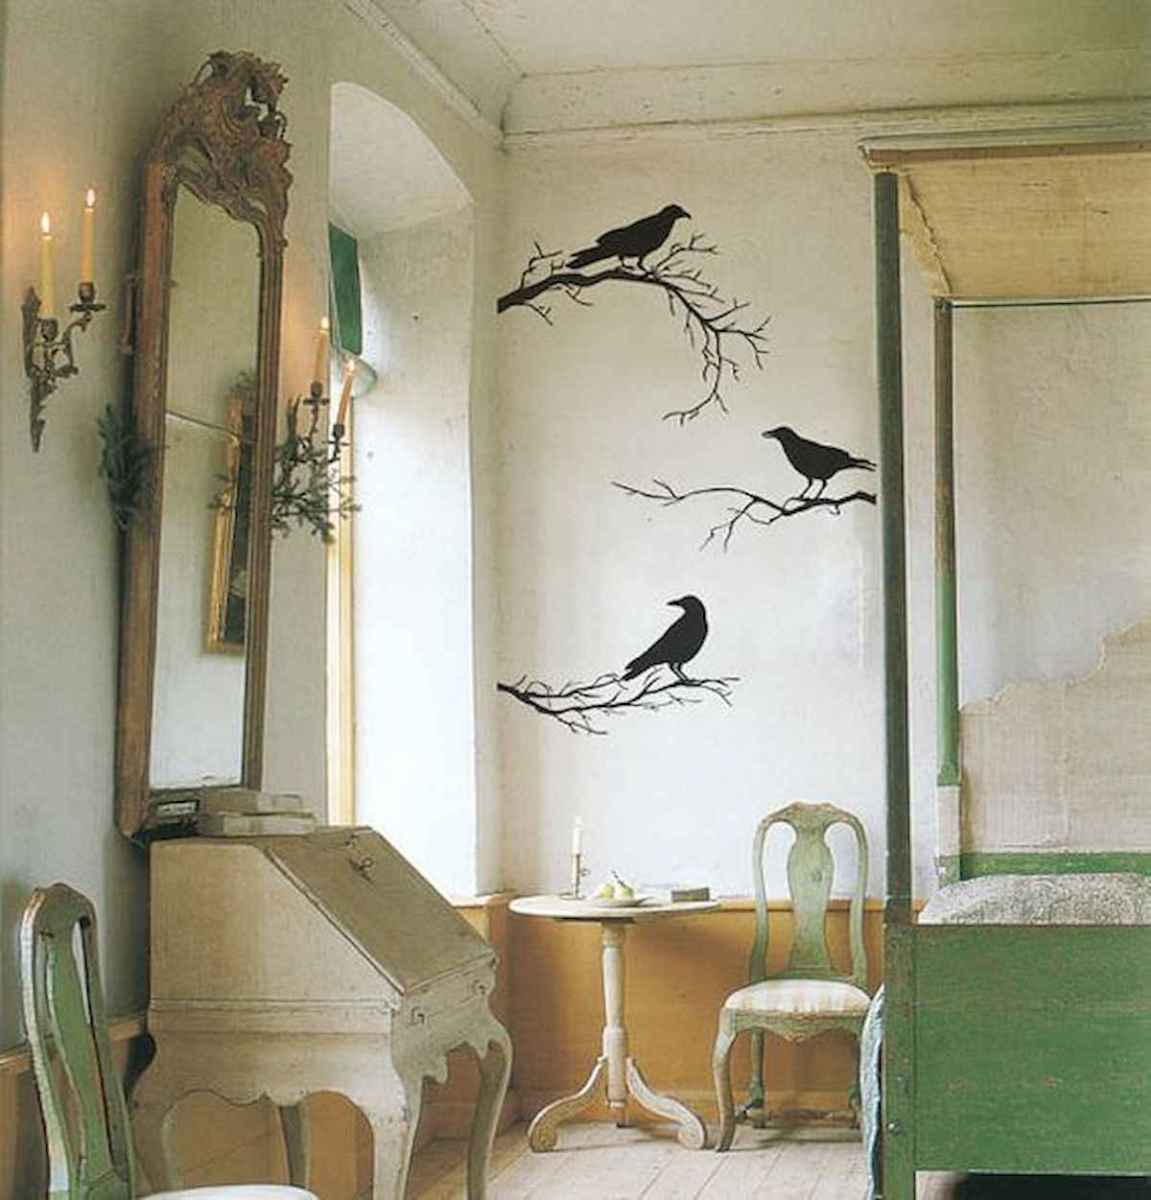 20 Creative Halloween Decorations to Get Your Home Ready for the Holiday (13)